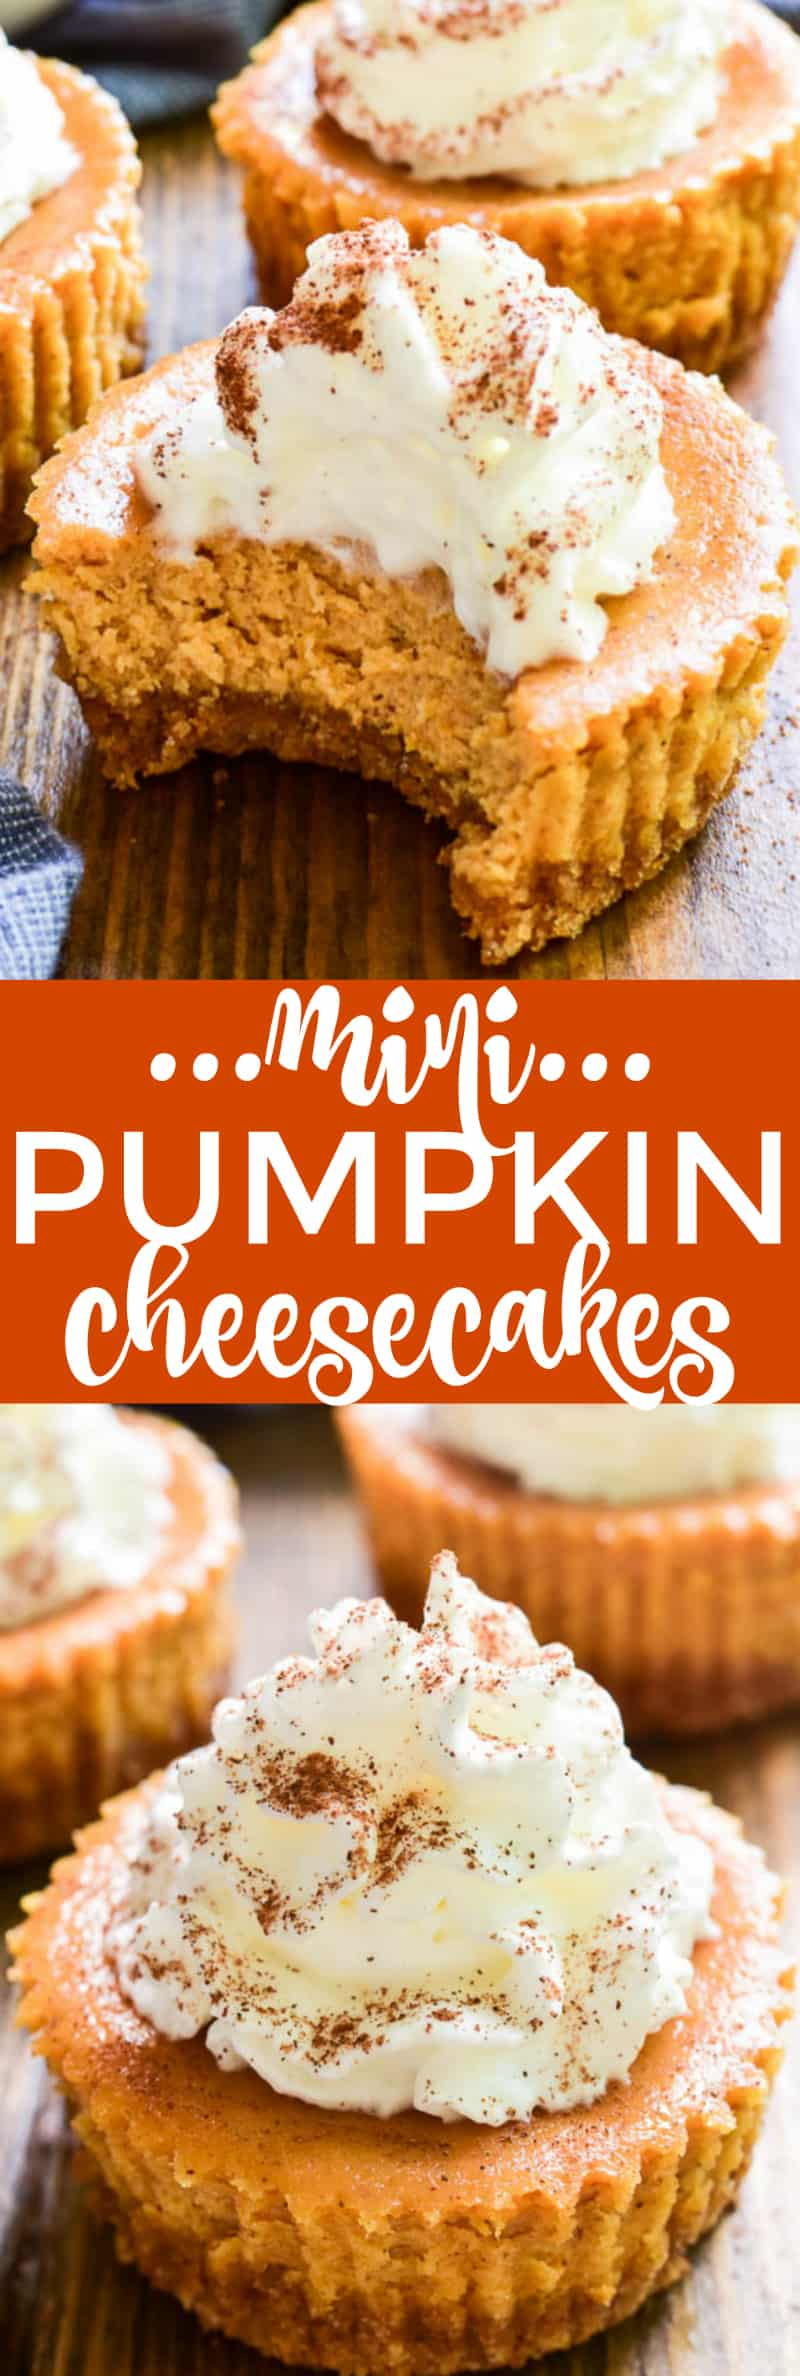 Collage image of Mini Pumpkin Cheesecakes